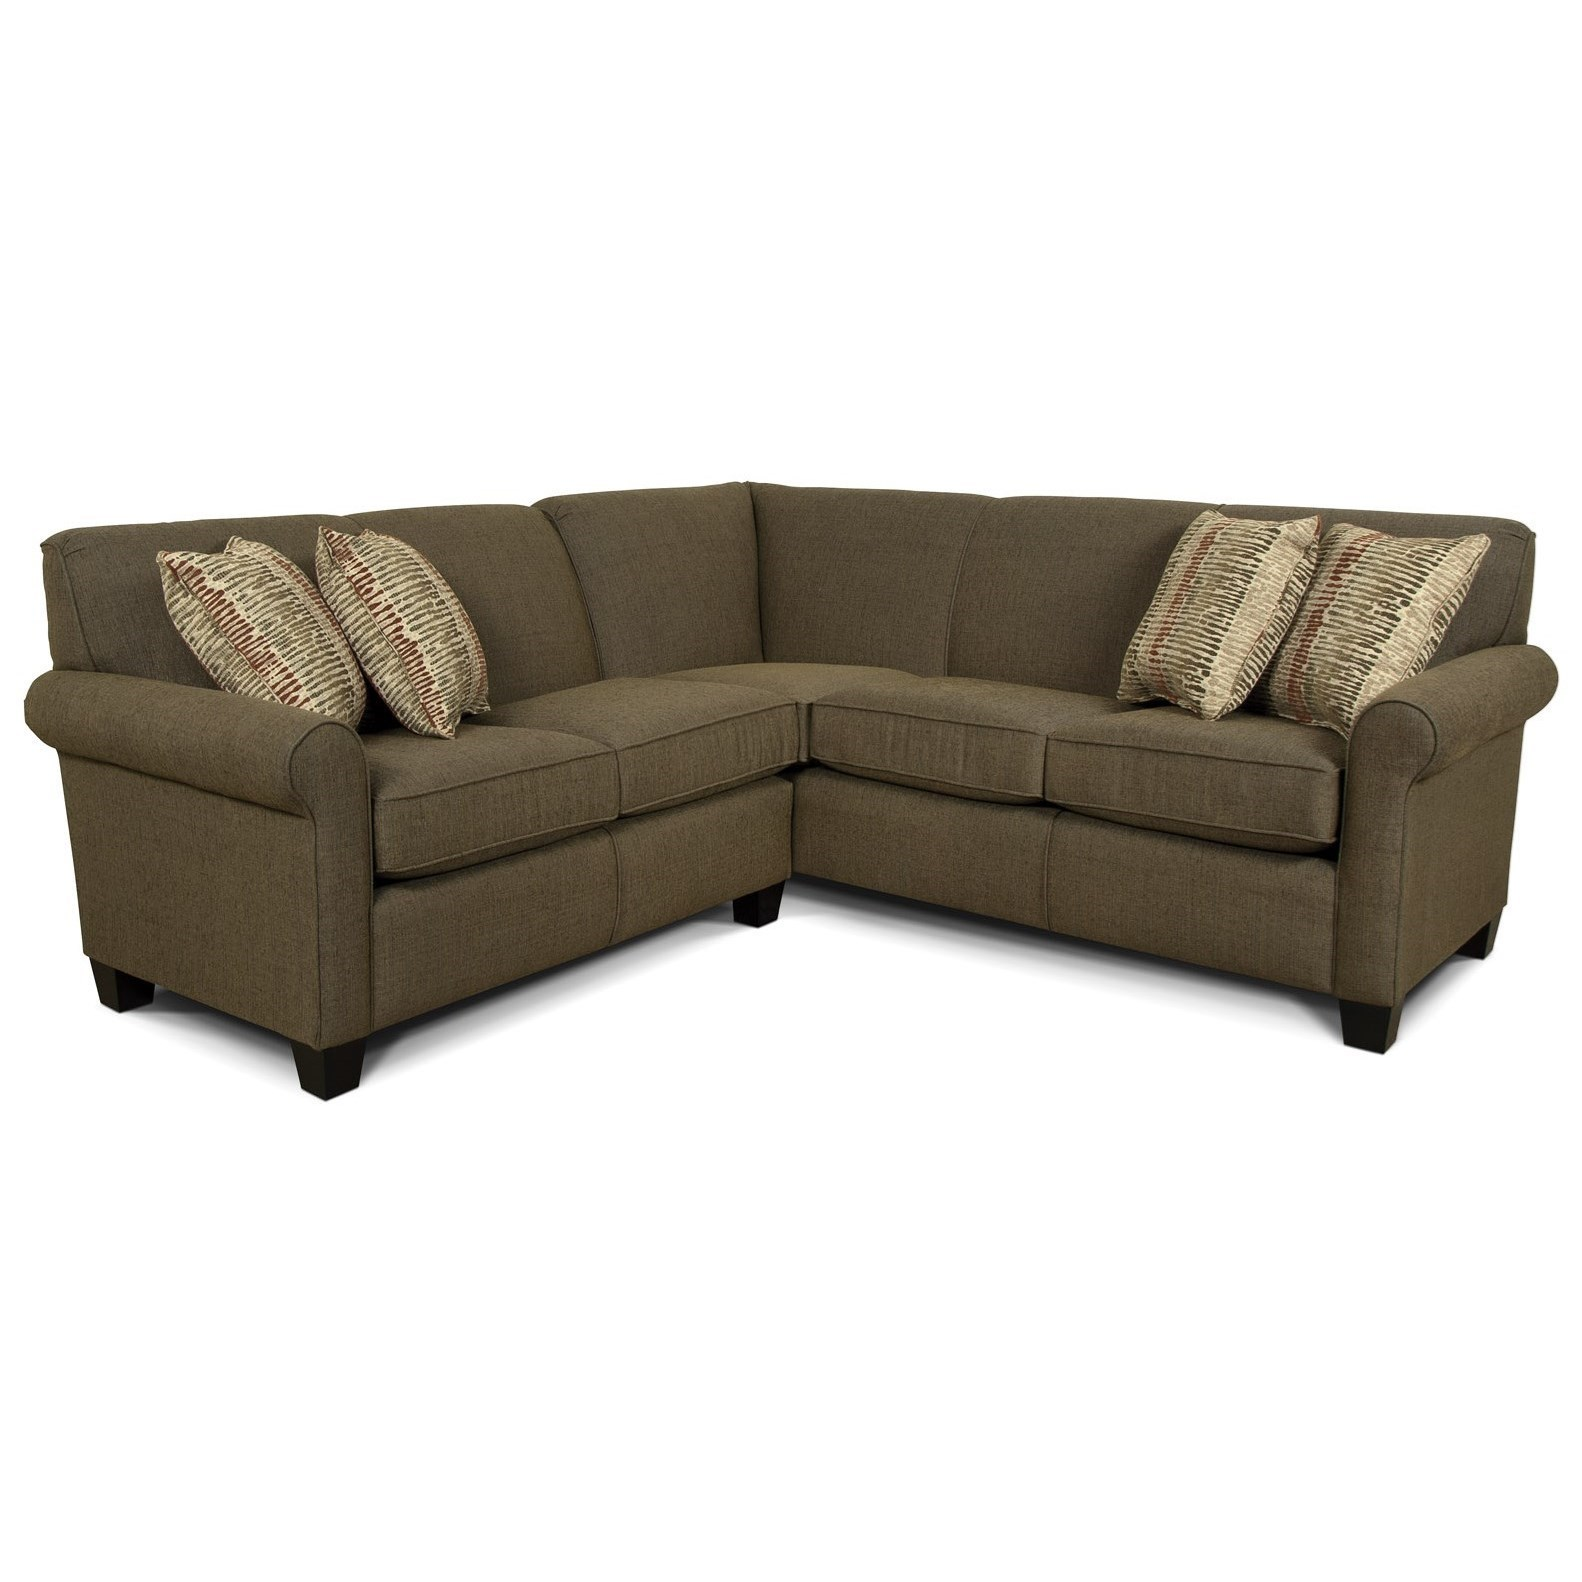 England Angie Small Corner Sectional Sofa - Colder's ...